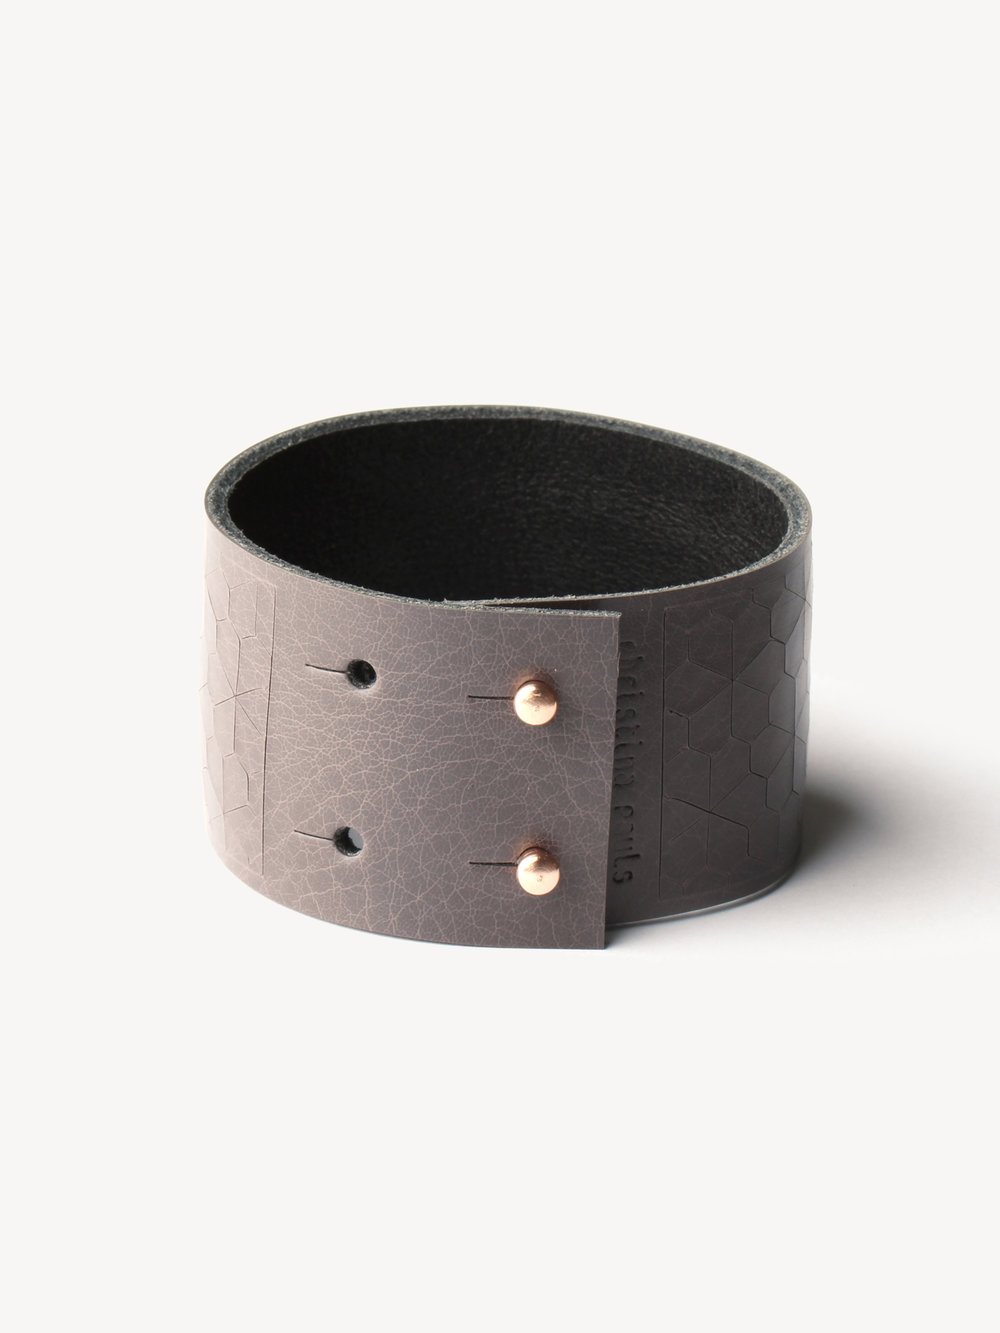 Leder-Armband, schmal in grau  Leather bracelet, small in grey